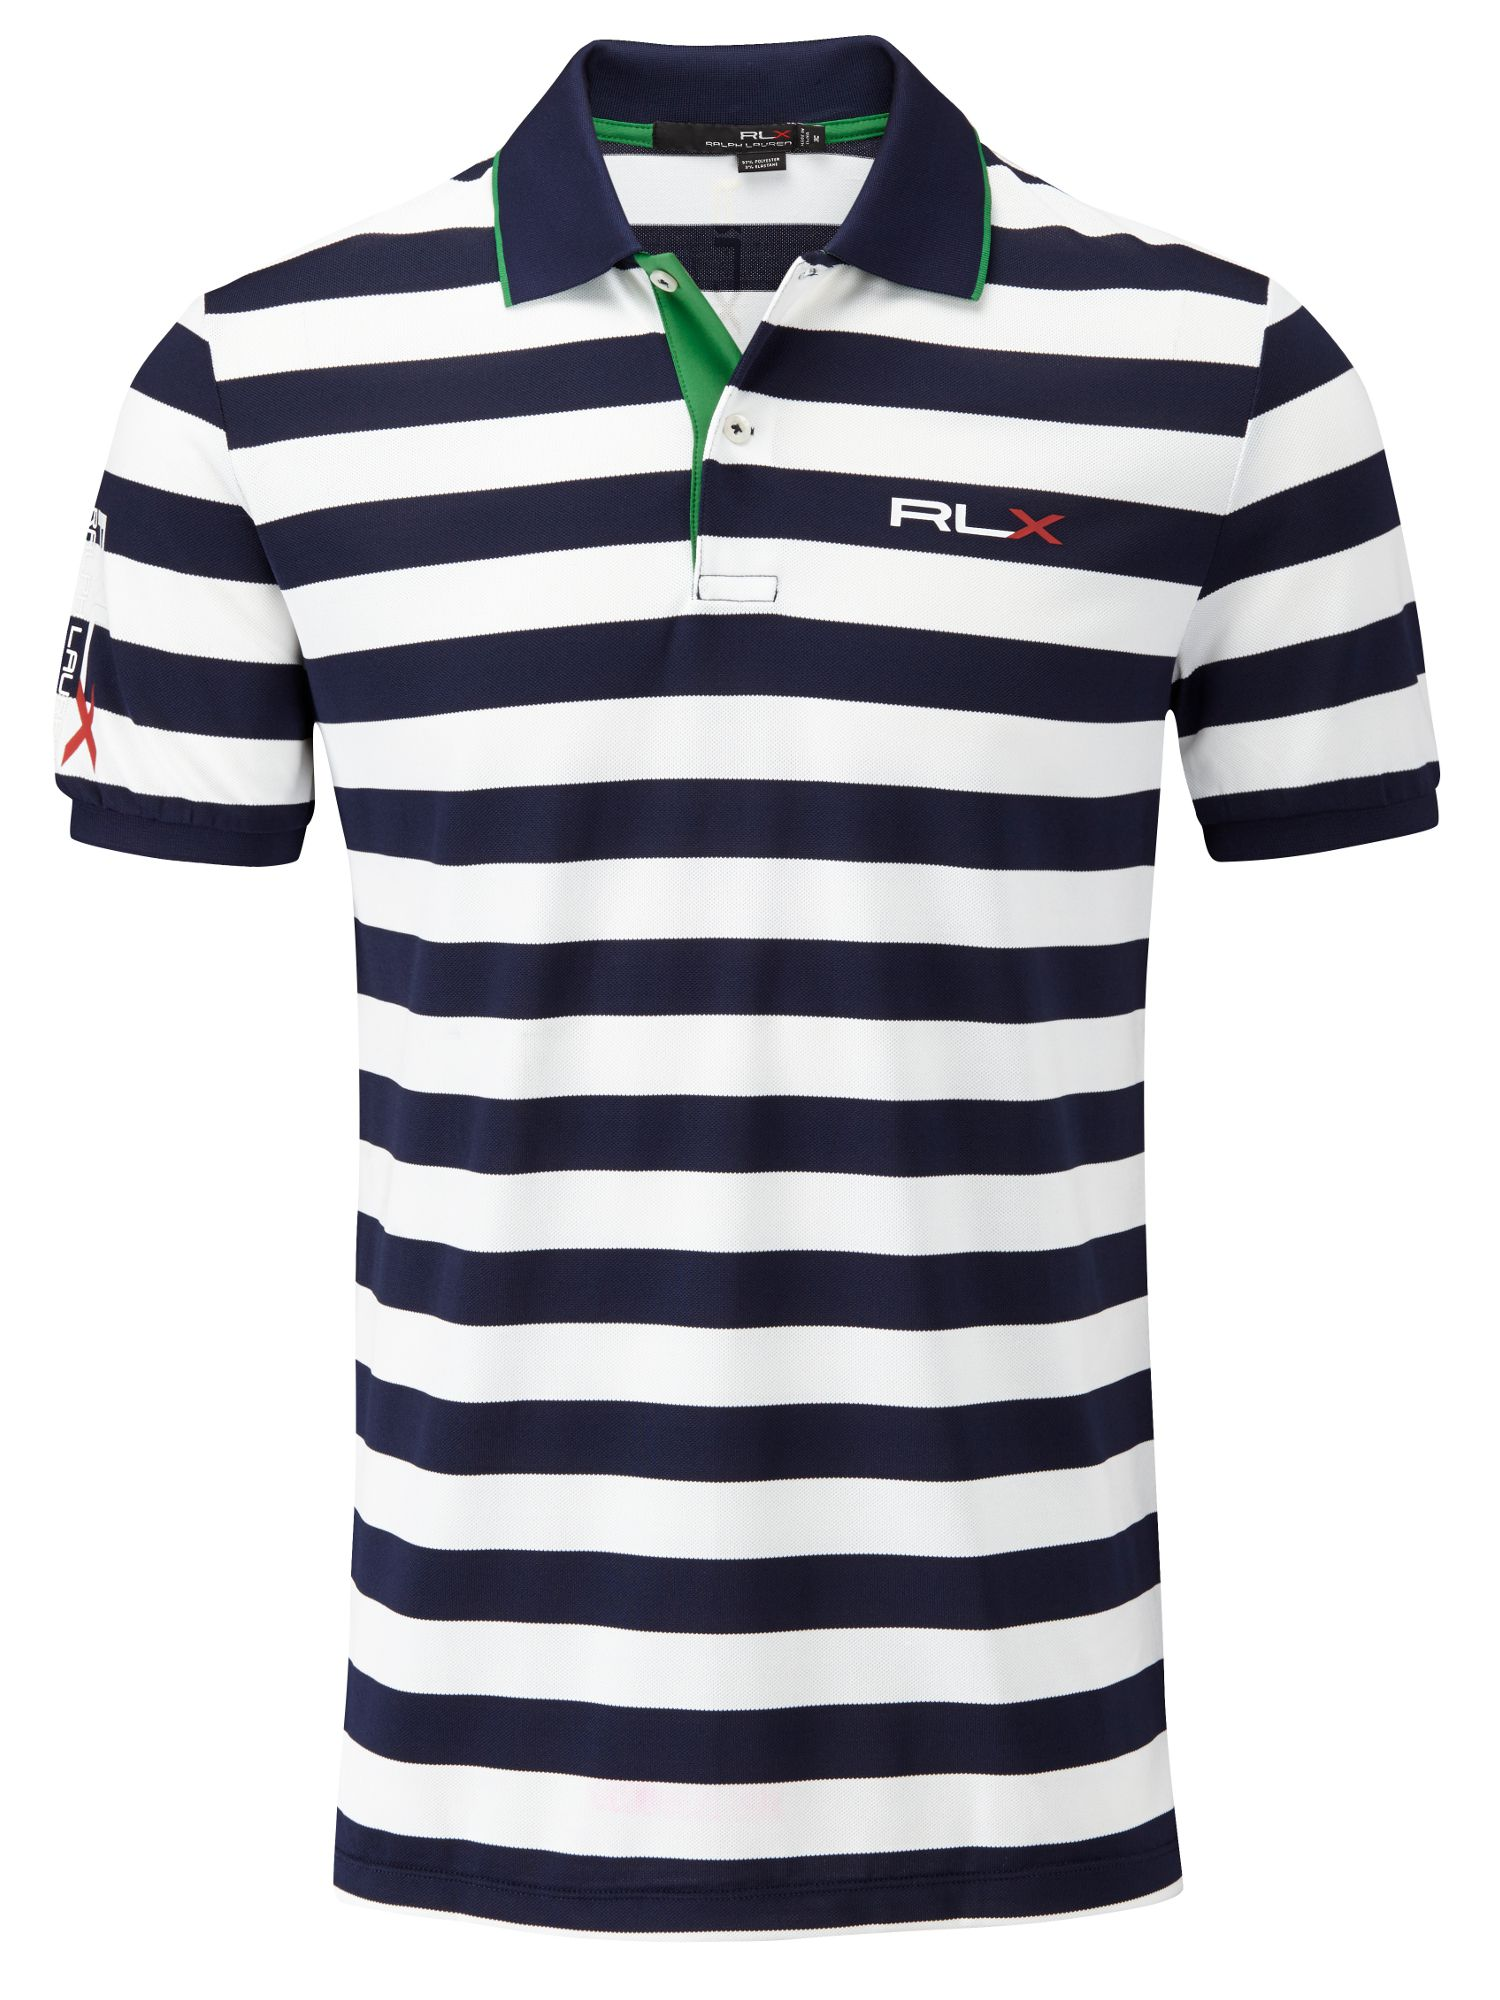 Stripe polo shirt tour fit